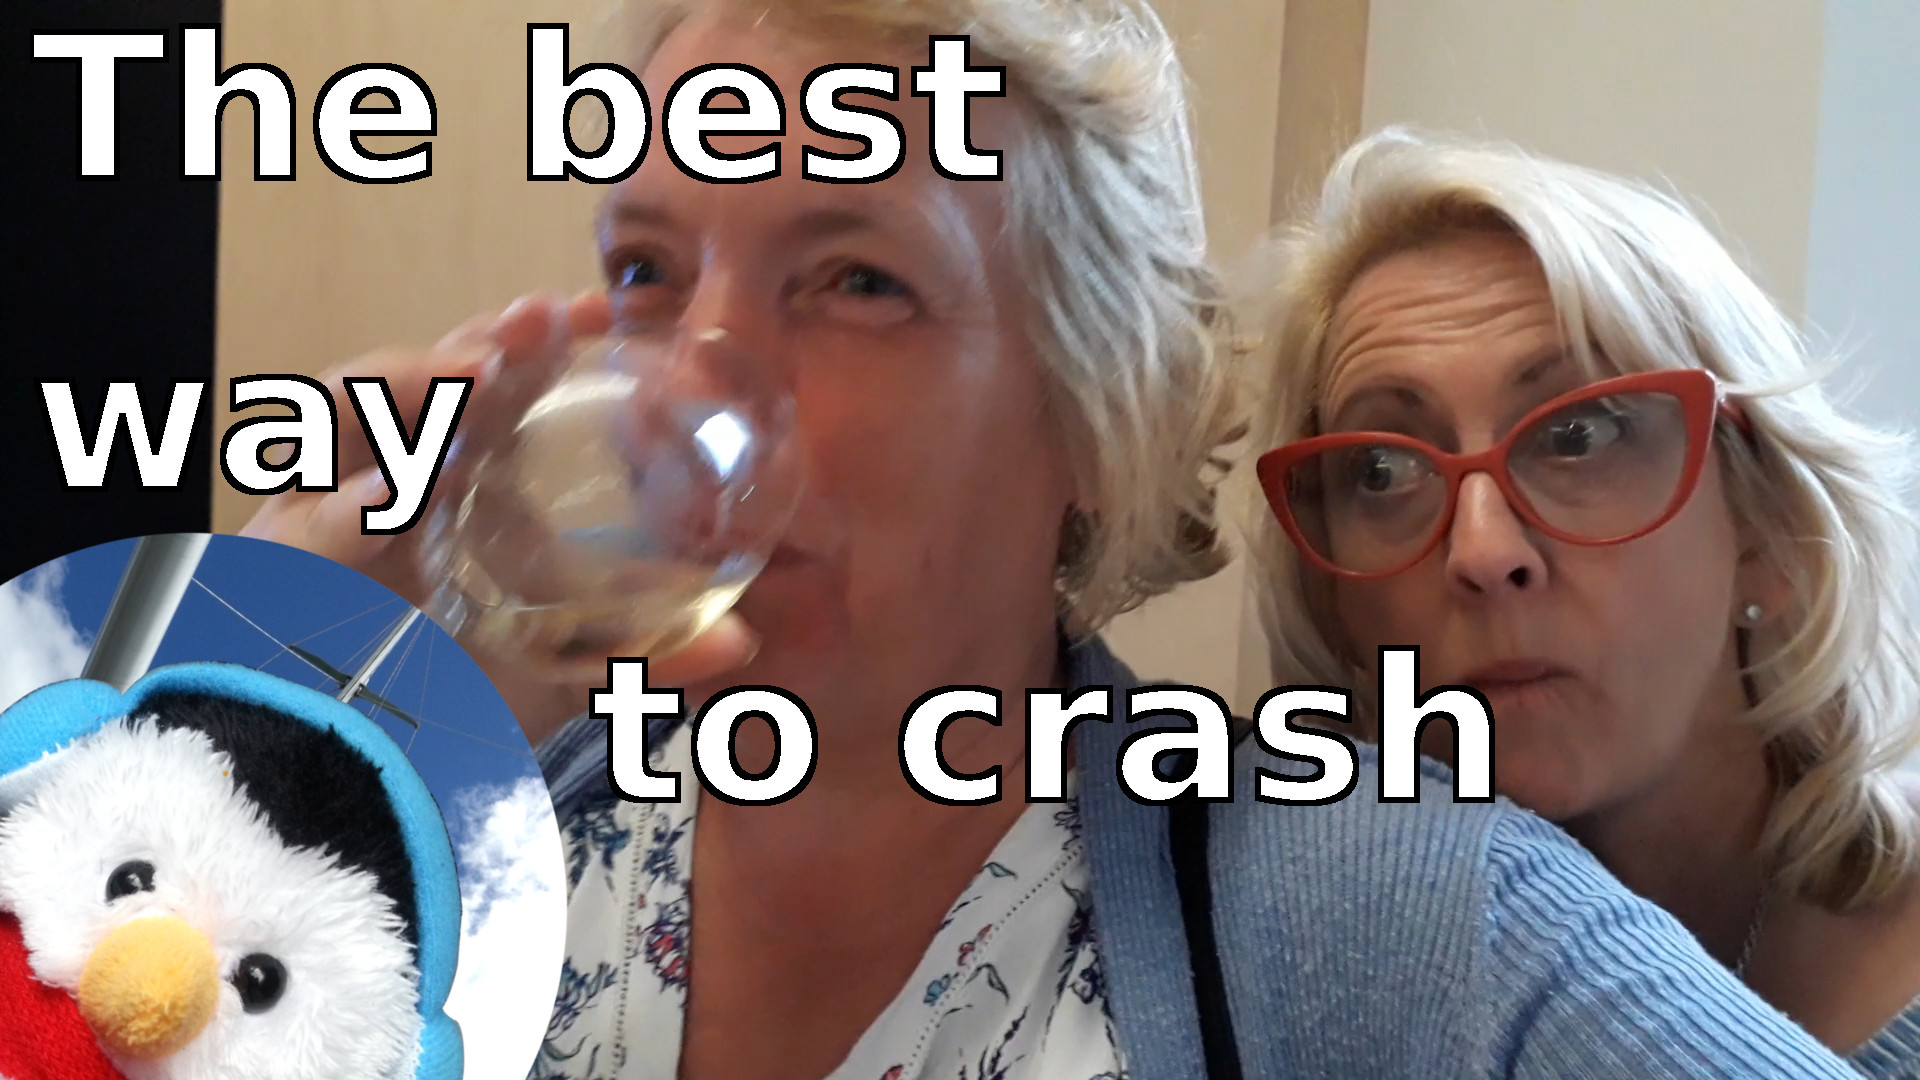 Watch our 'The best way to crash' video and add comments etc